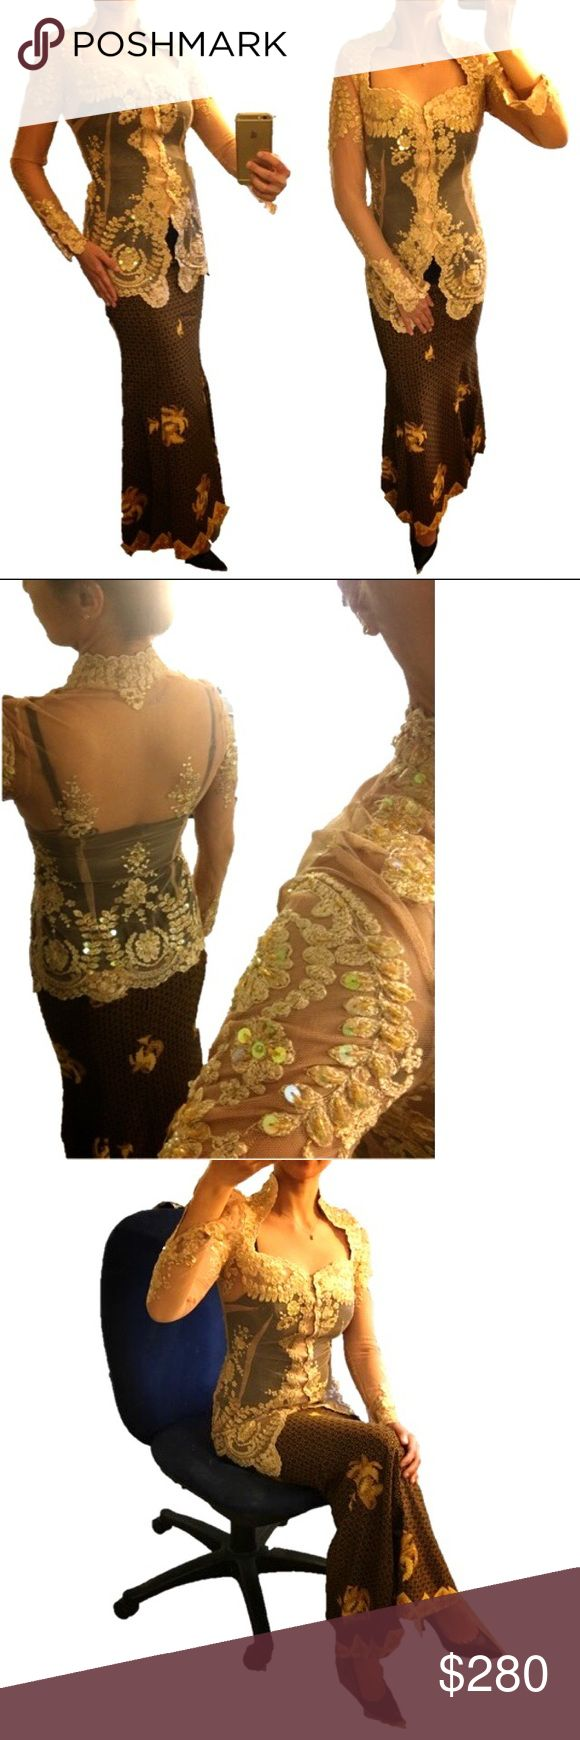 Indonesian Modern Kebaya Top Beaded Party Gown Tanned Bridal Tulle Modern Kebaya Top Beaded Party Gown Long Sleeve  Pre-Loved  Color: Tanned  Size: XS  Height: 152cm  Shoulder wide: 40cm Bust: 83cm  Hips: 86cm   A Set Of Beaded Tulle Modern Kebaya Top With Batik Long Mermaid Silk Skirt  This Gown will WOW everyone in any occasion. Dresses Long Sleeve